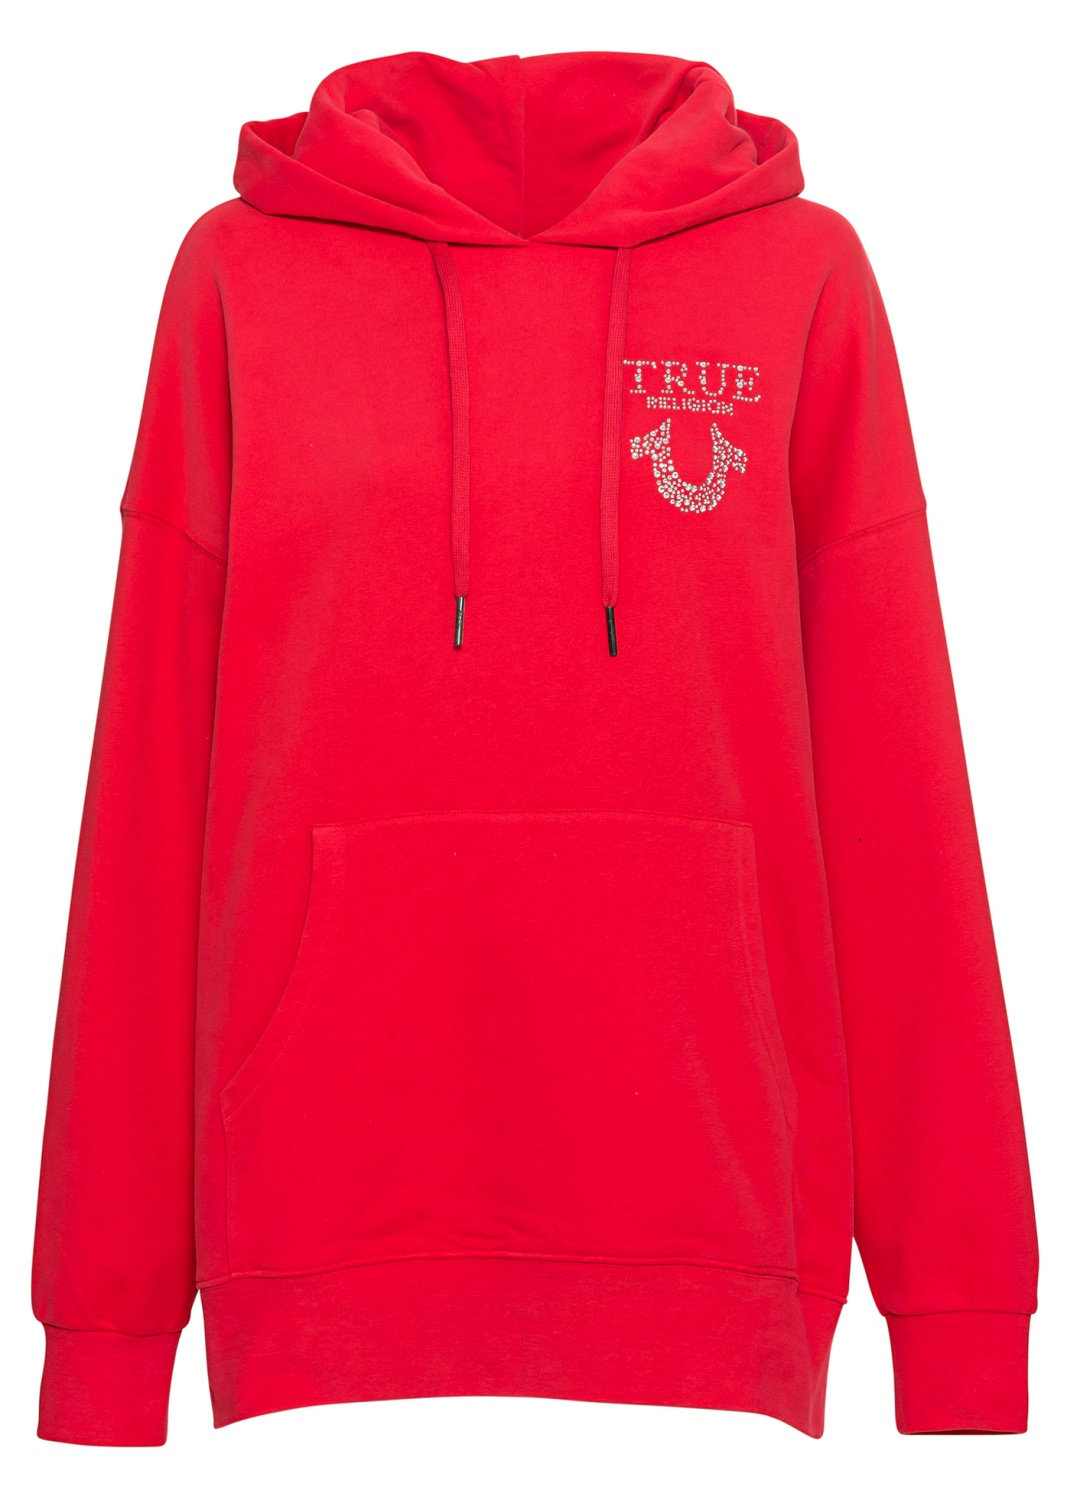 HOODY OVERSIZED RED image number 0